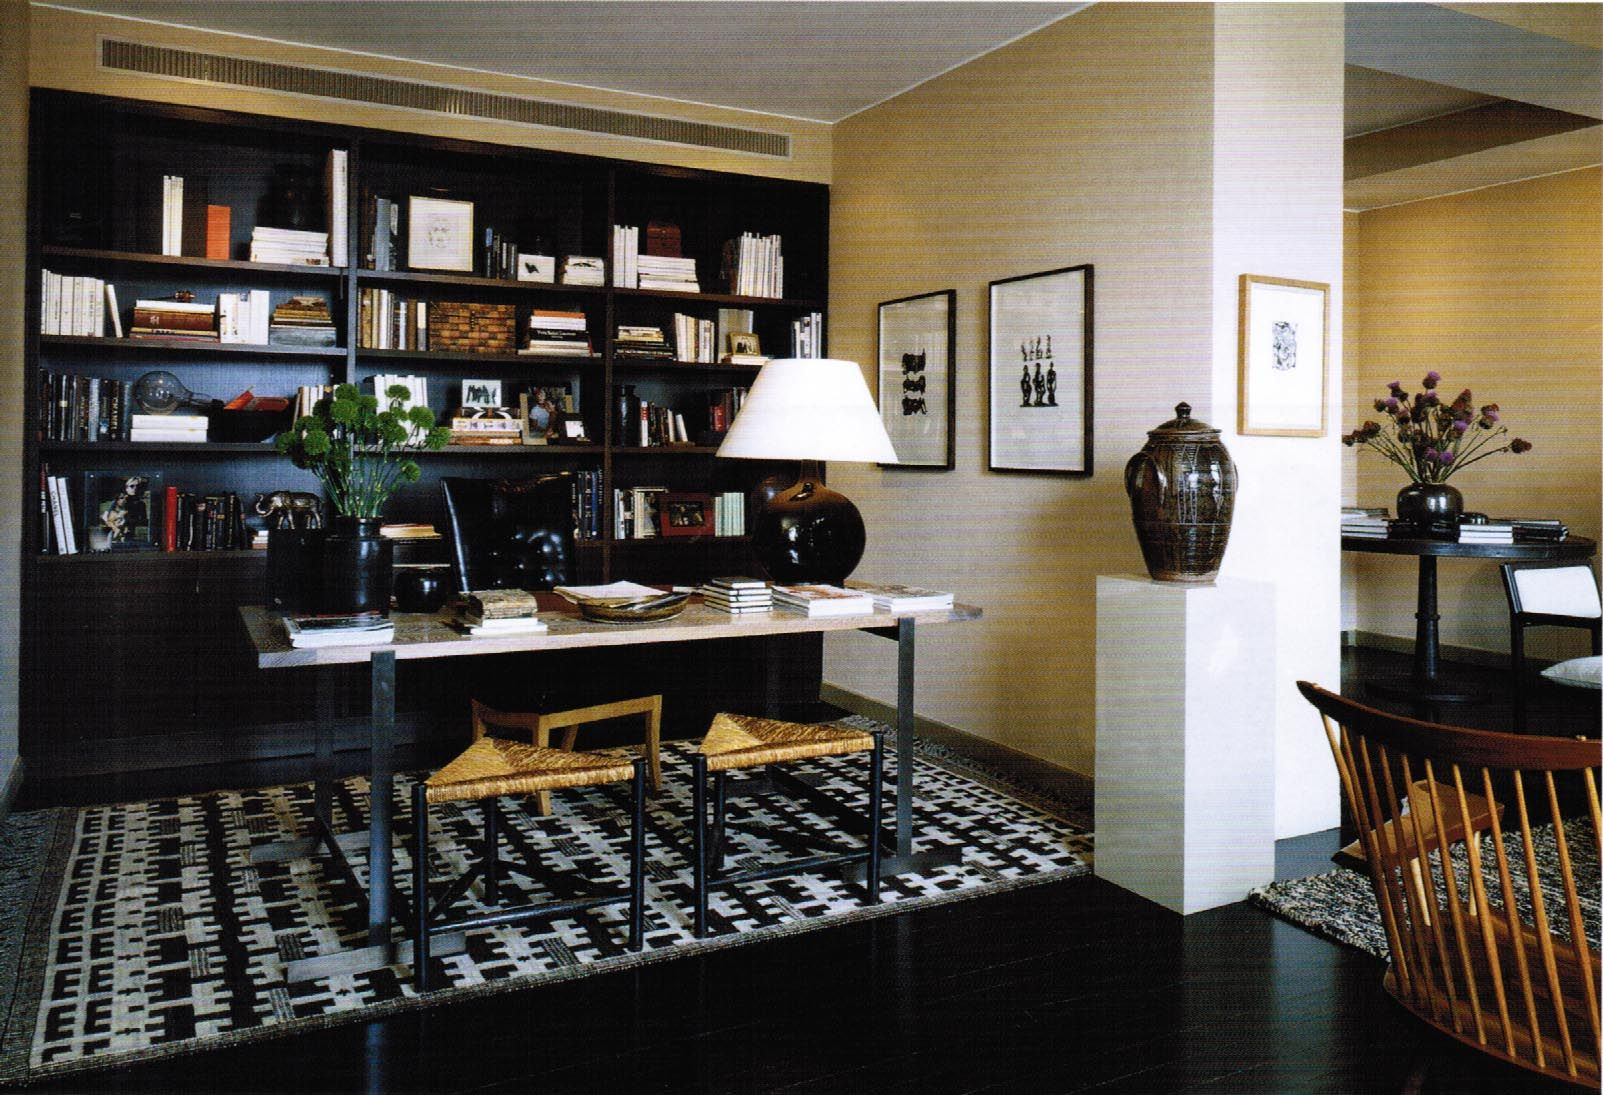 Studio reed jonathan reed s spare crafted interior design - Jonathan Reed